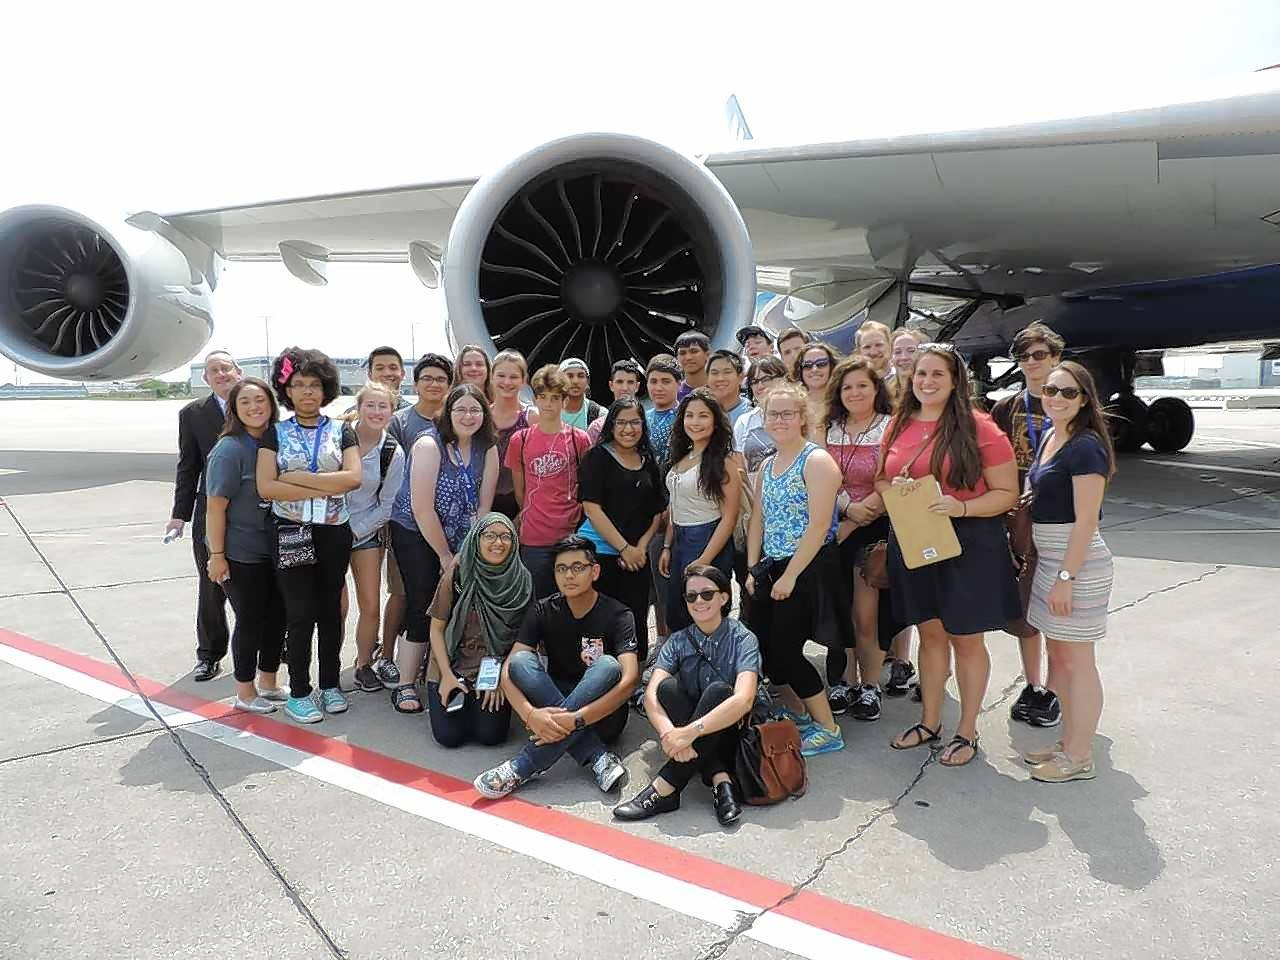 High school students from Chicago and the suburbs visited O'Hare International Airport to learn about Chicago's role as a hub of air travel and freight movement as part of the Chicago Metropolitan Agency for Planning's Future Leaders in Planning summer workshop.